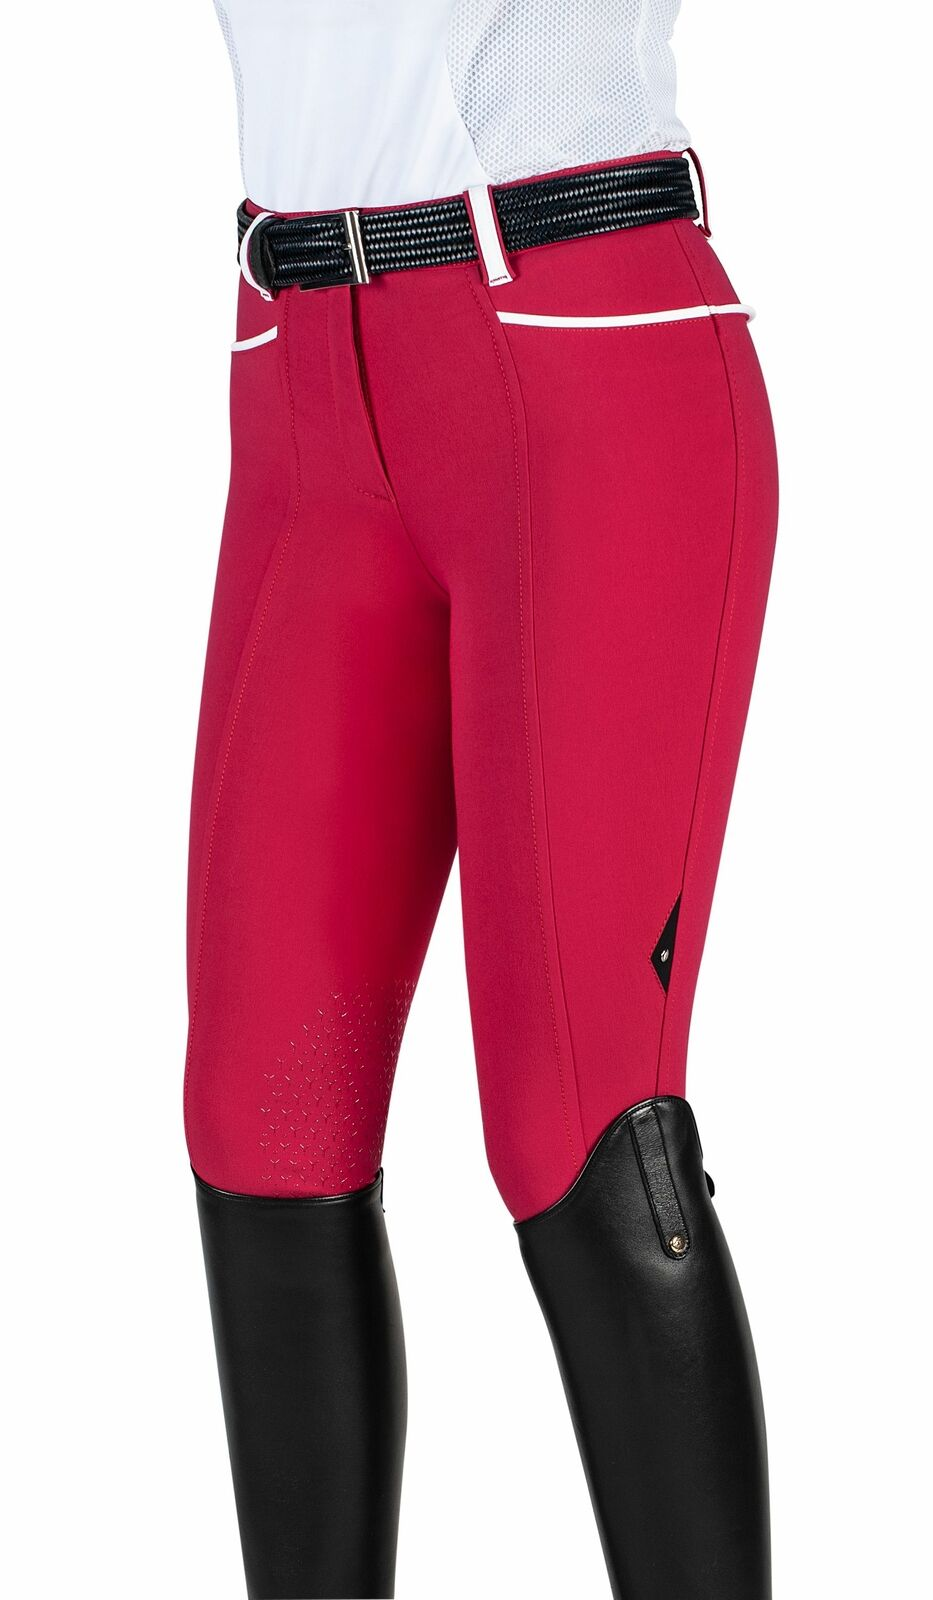 Equiline Juliette mujer FULL GRIP BREECHES Cherry rojo SS 2019